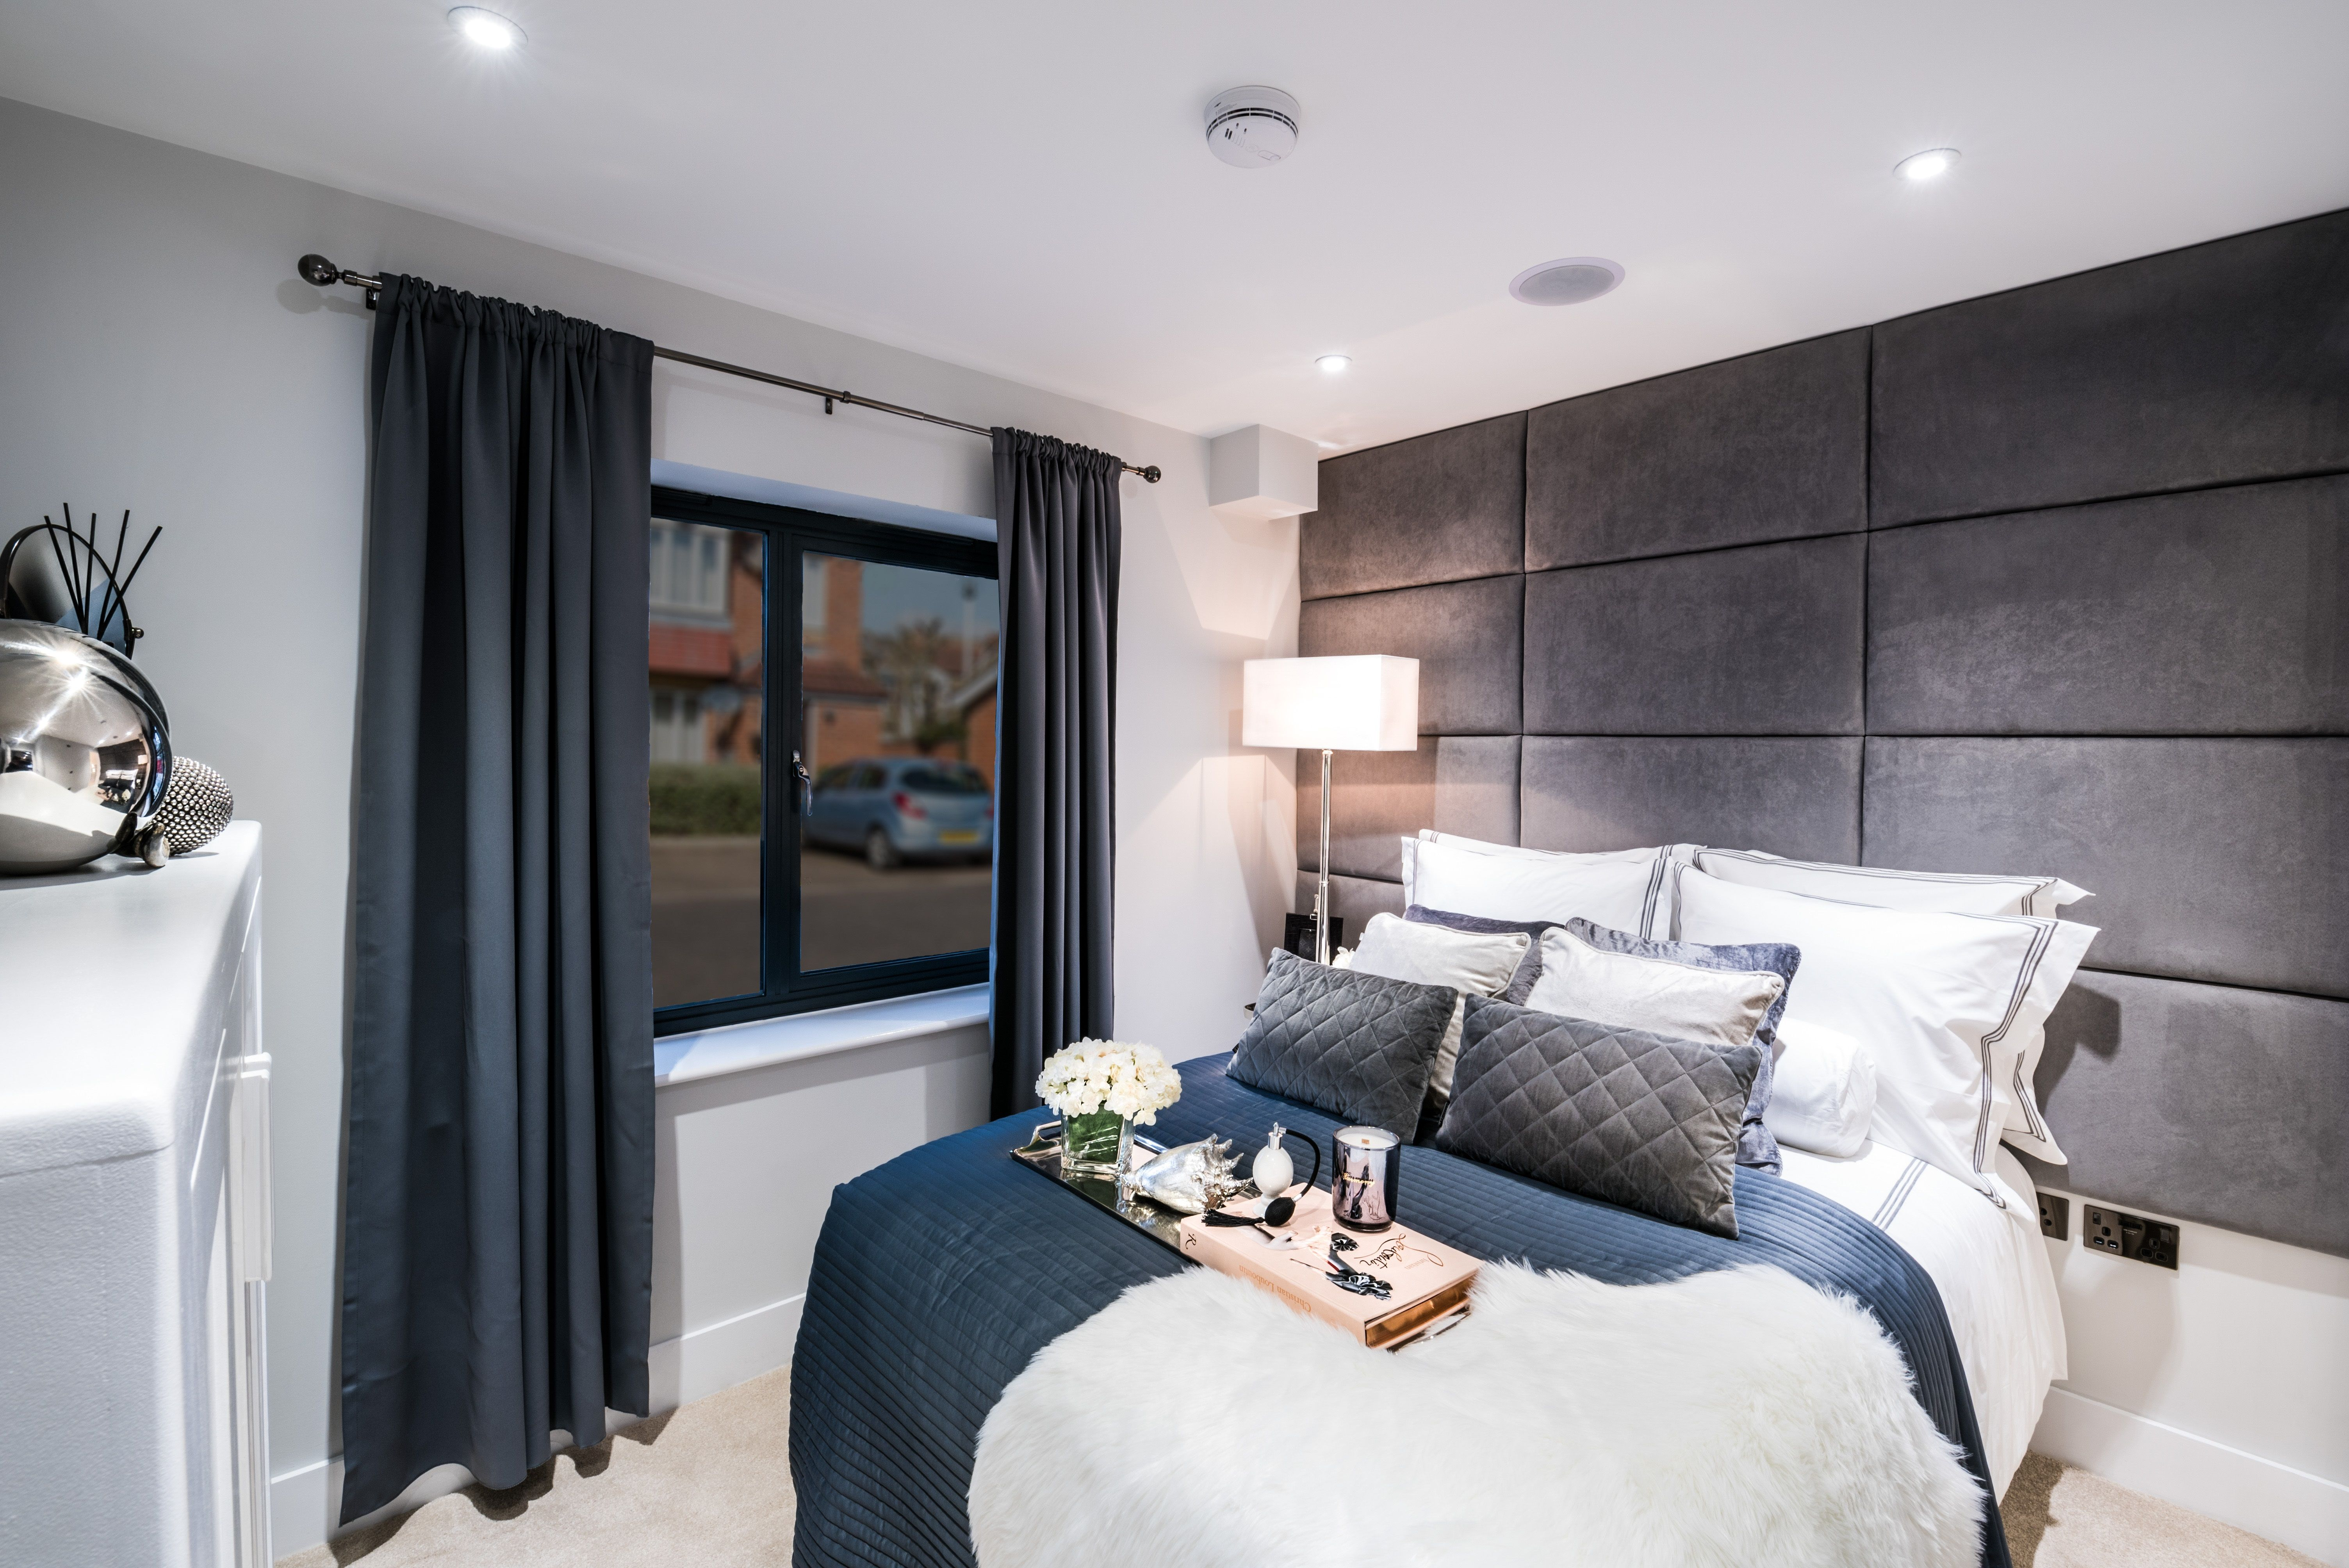 Are You Searching For Creative Wall Panel Ideas? Call Leicester Headboard  Co On 0116 288 6162 To Get Panels That Suit Your Bedroom.